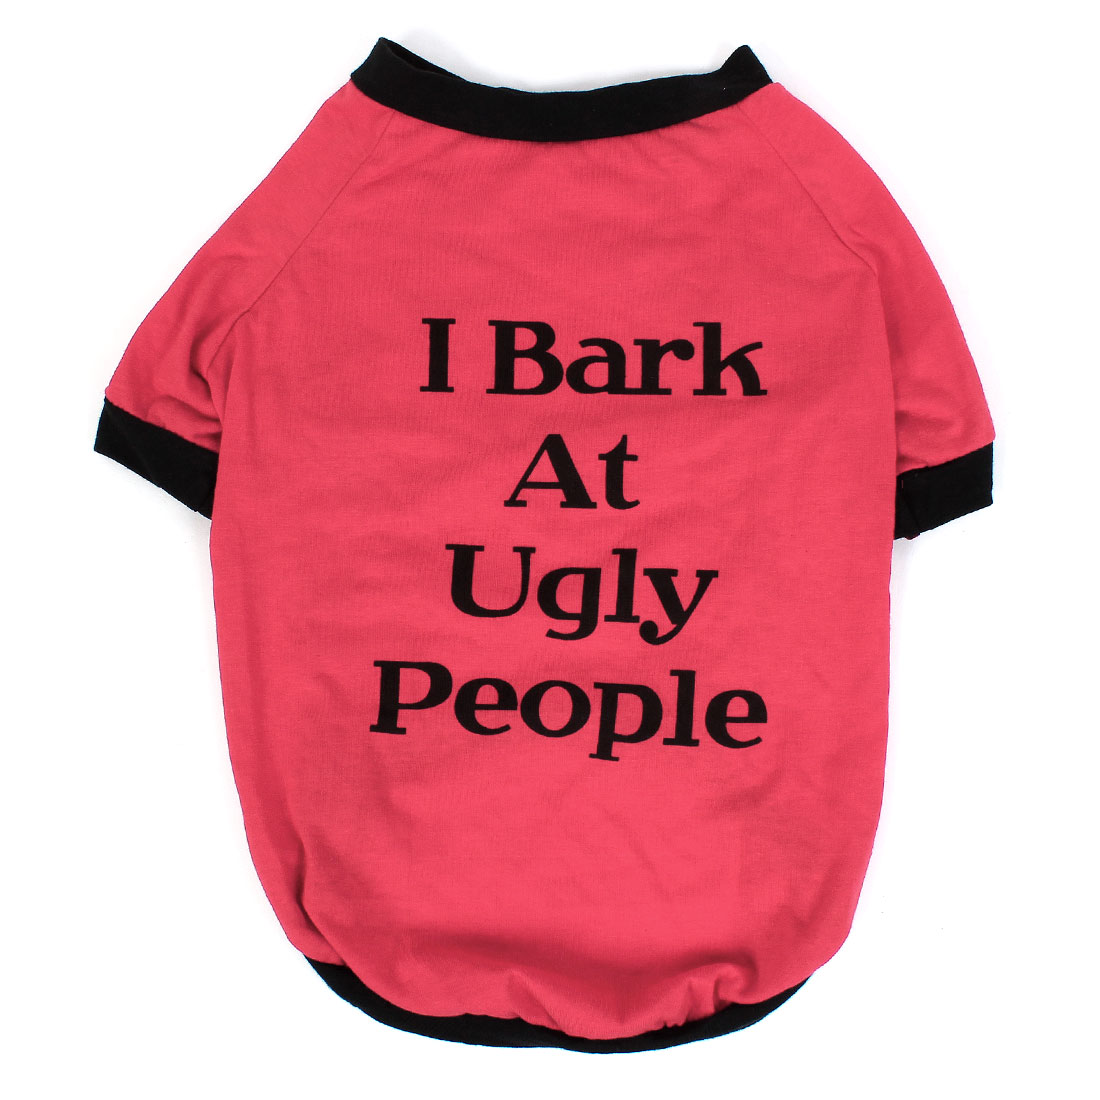 English Characters Pattern Pet Dog Puppy Sleeved T Shirt Clothes Apparel Red Black Size XL